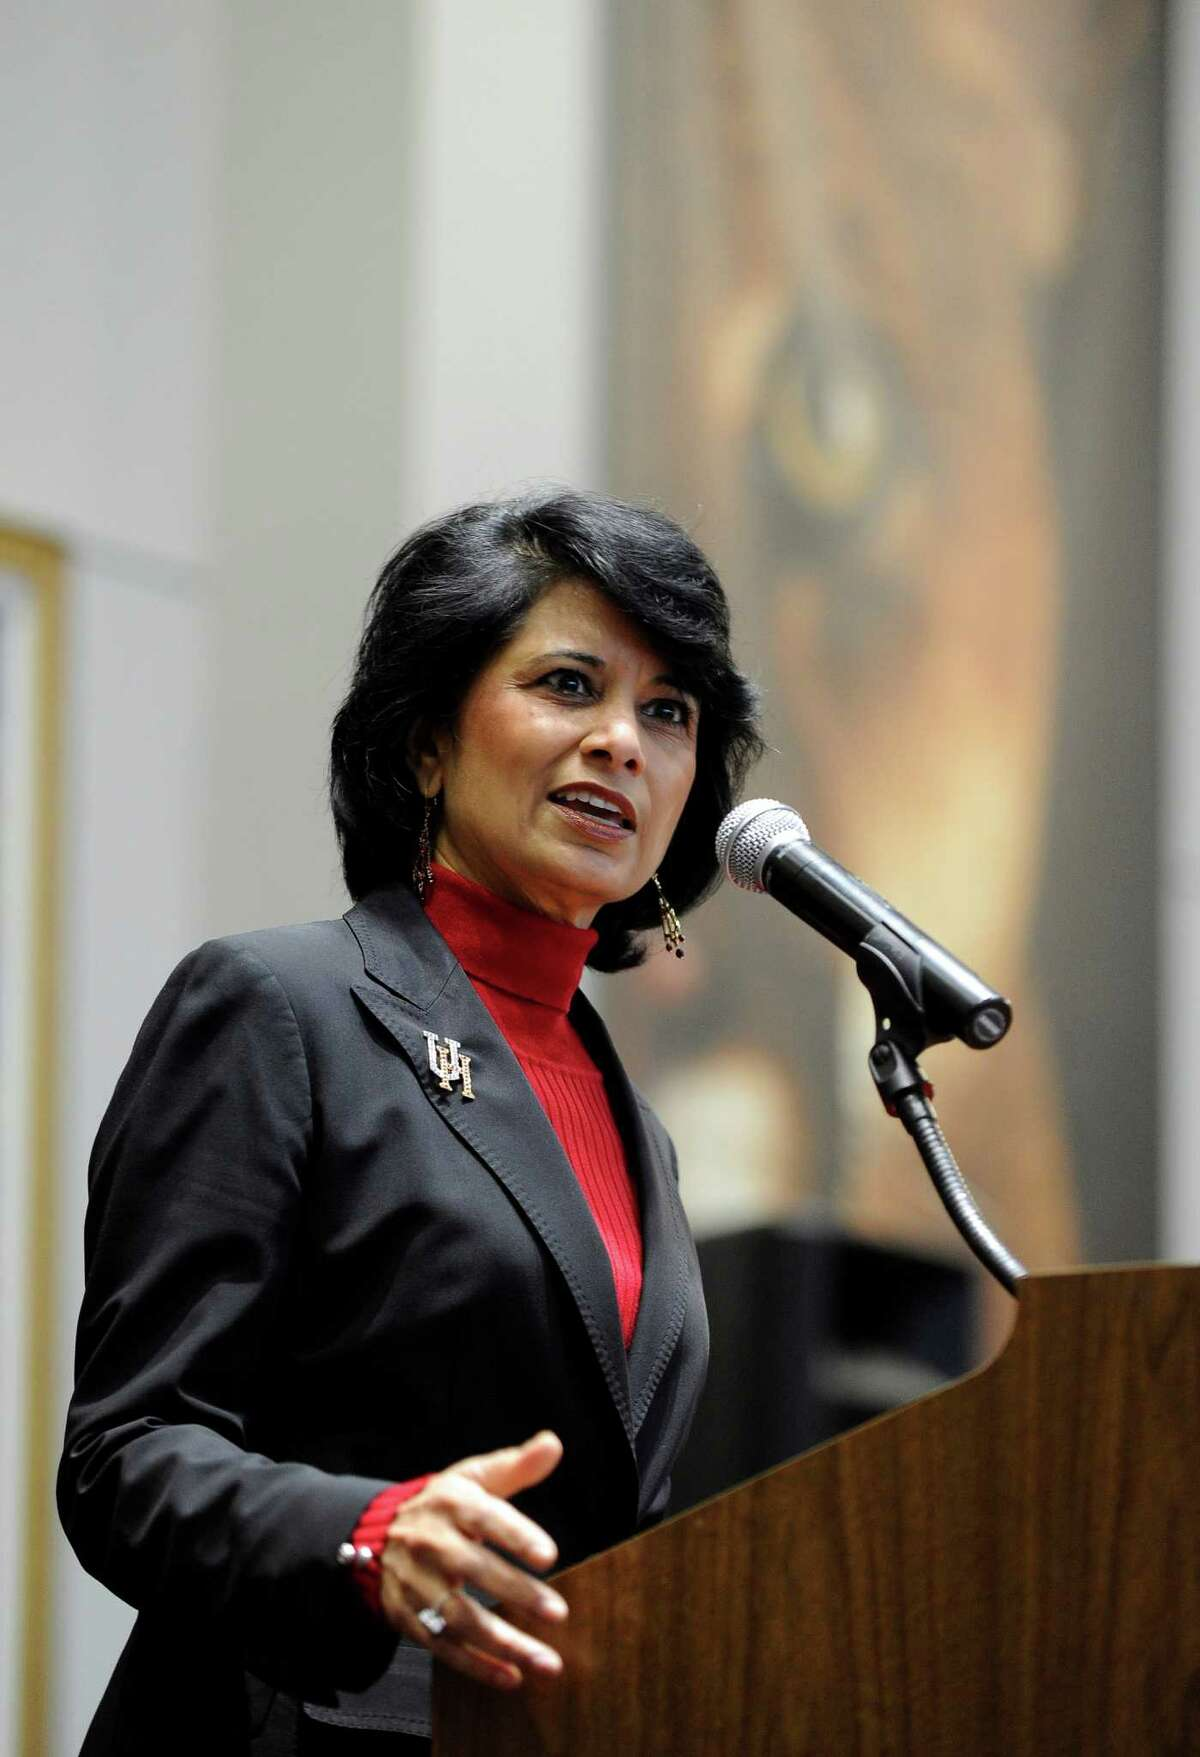 University of Houston president and chancellor Renu Khator speaks during a press conference.